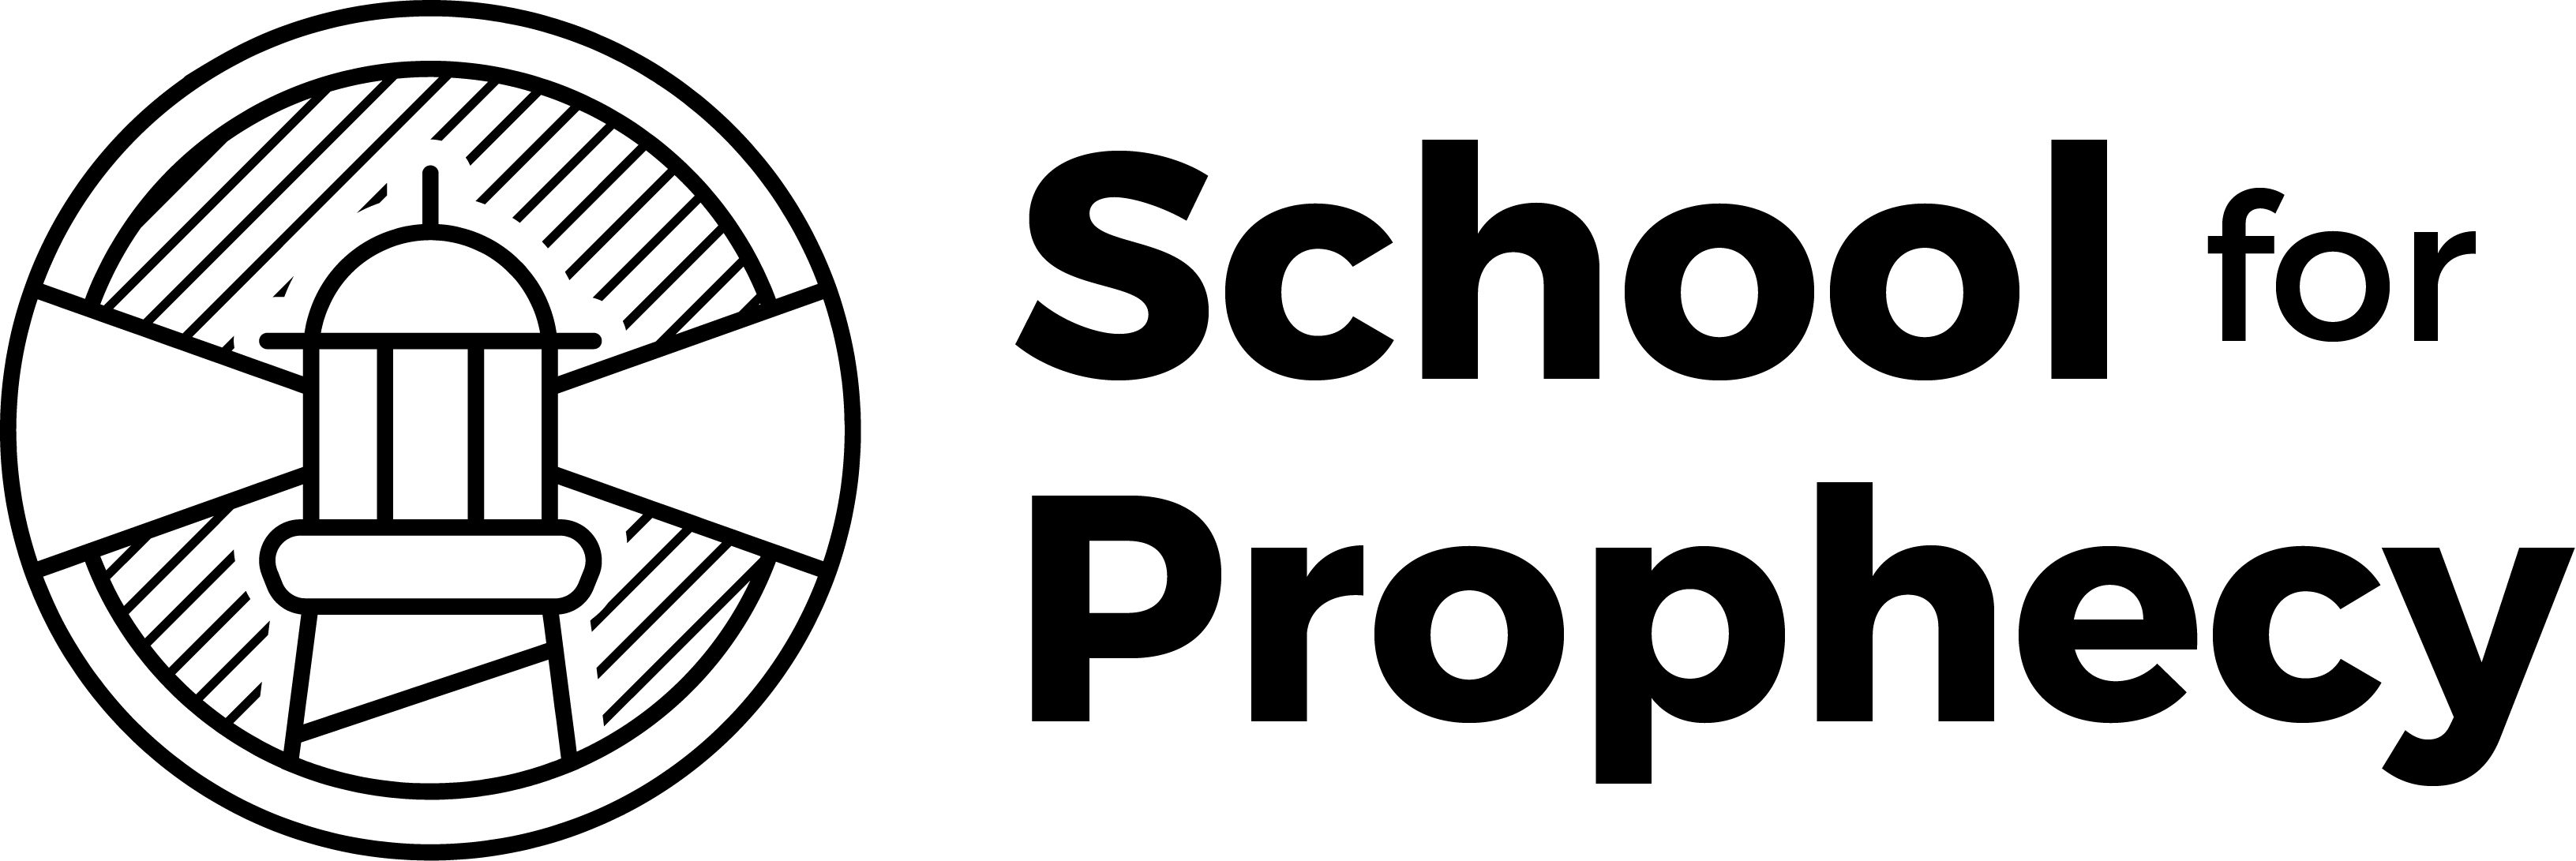 School For Prophecy